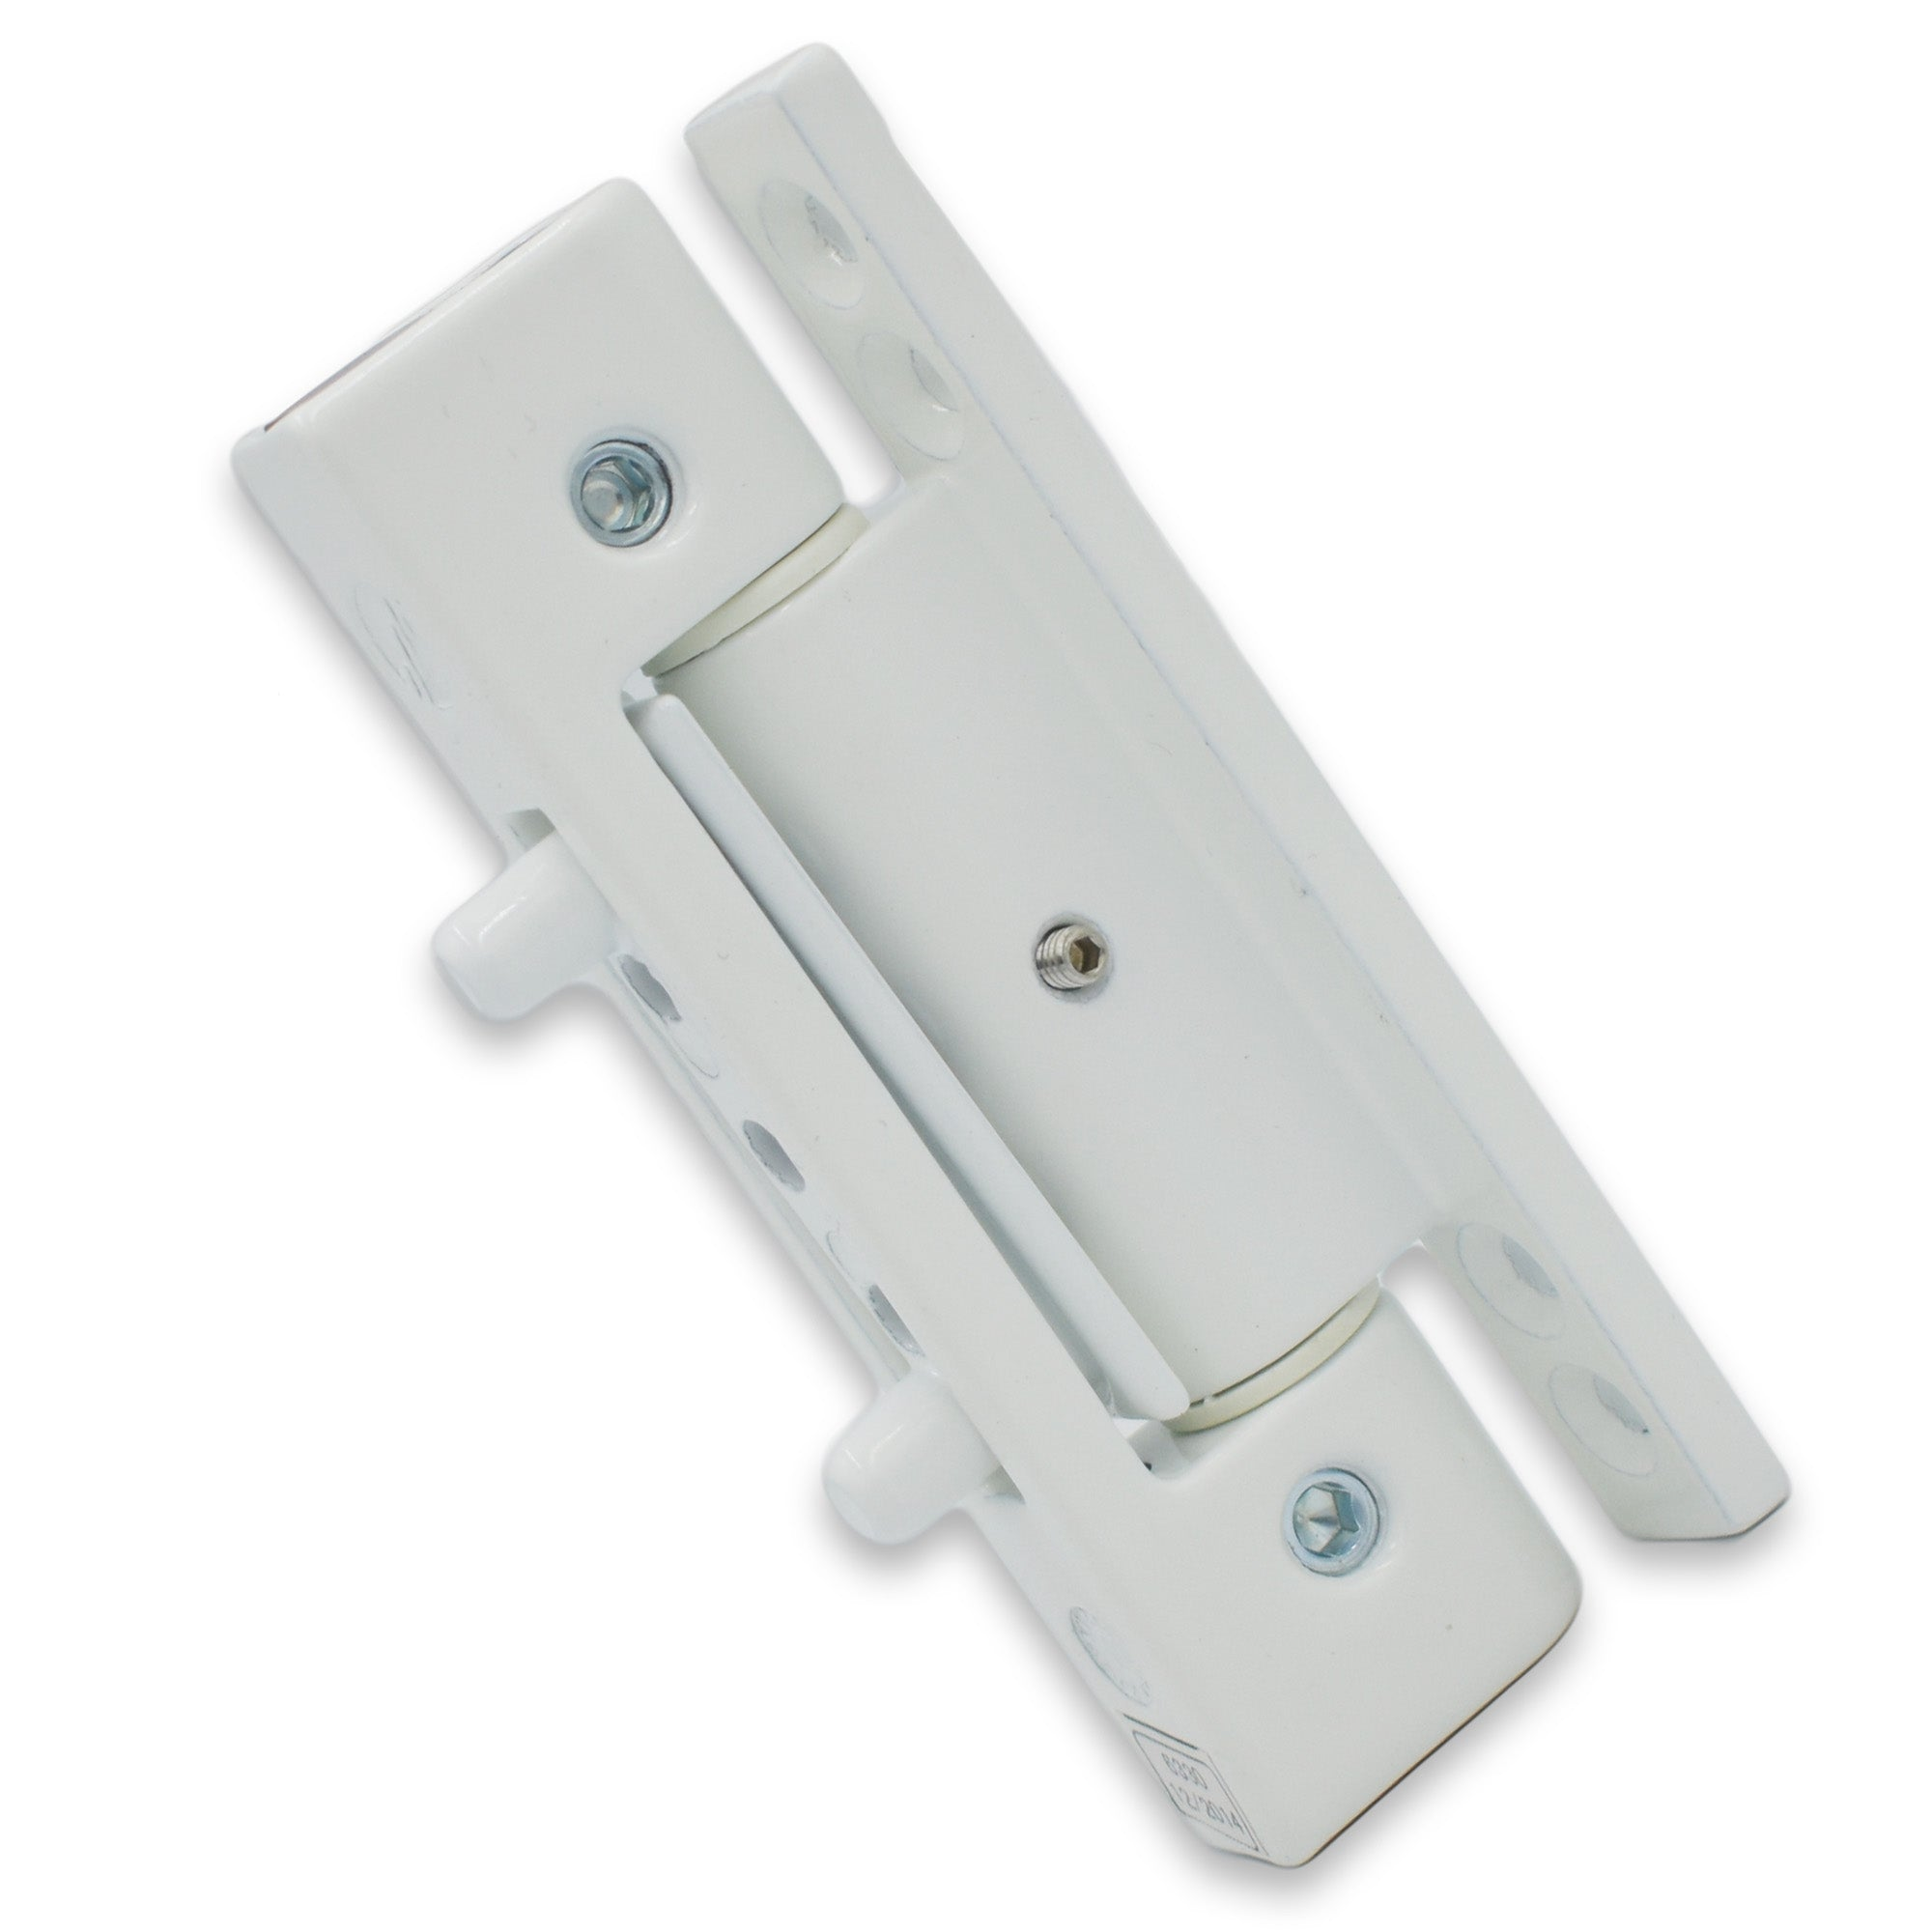 Mila White iDeal Adjustable Upvc Door Butt Security Hinge 0 Deg 110mm -  - Mila - UPVCSTORE